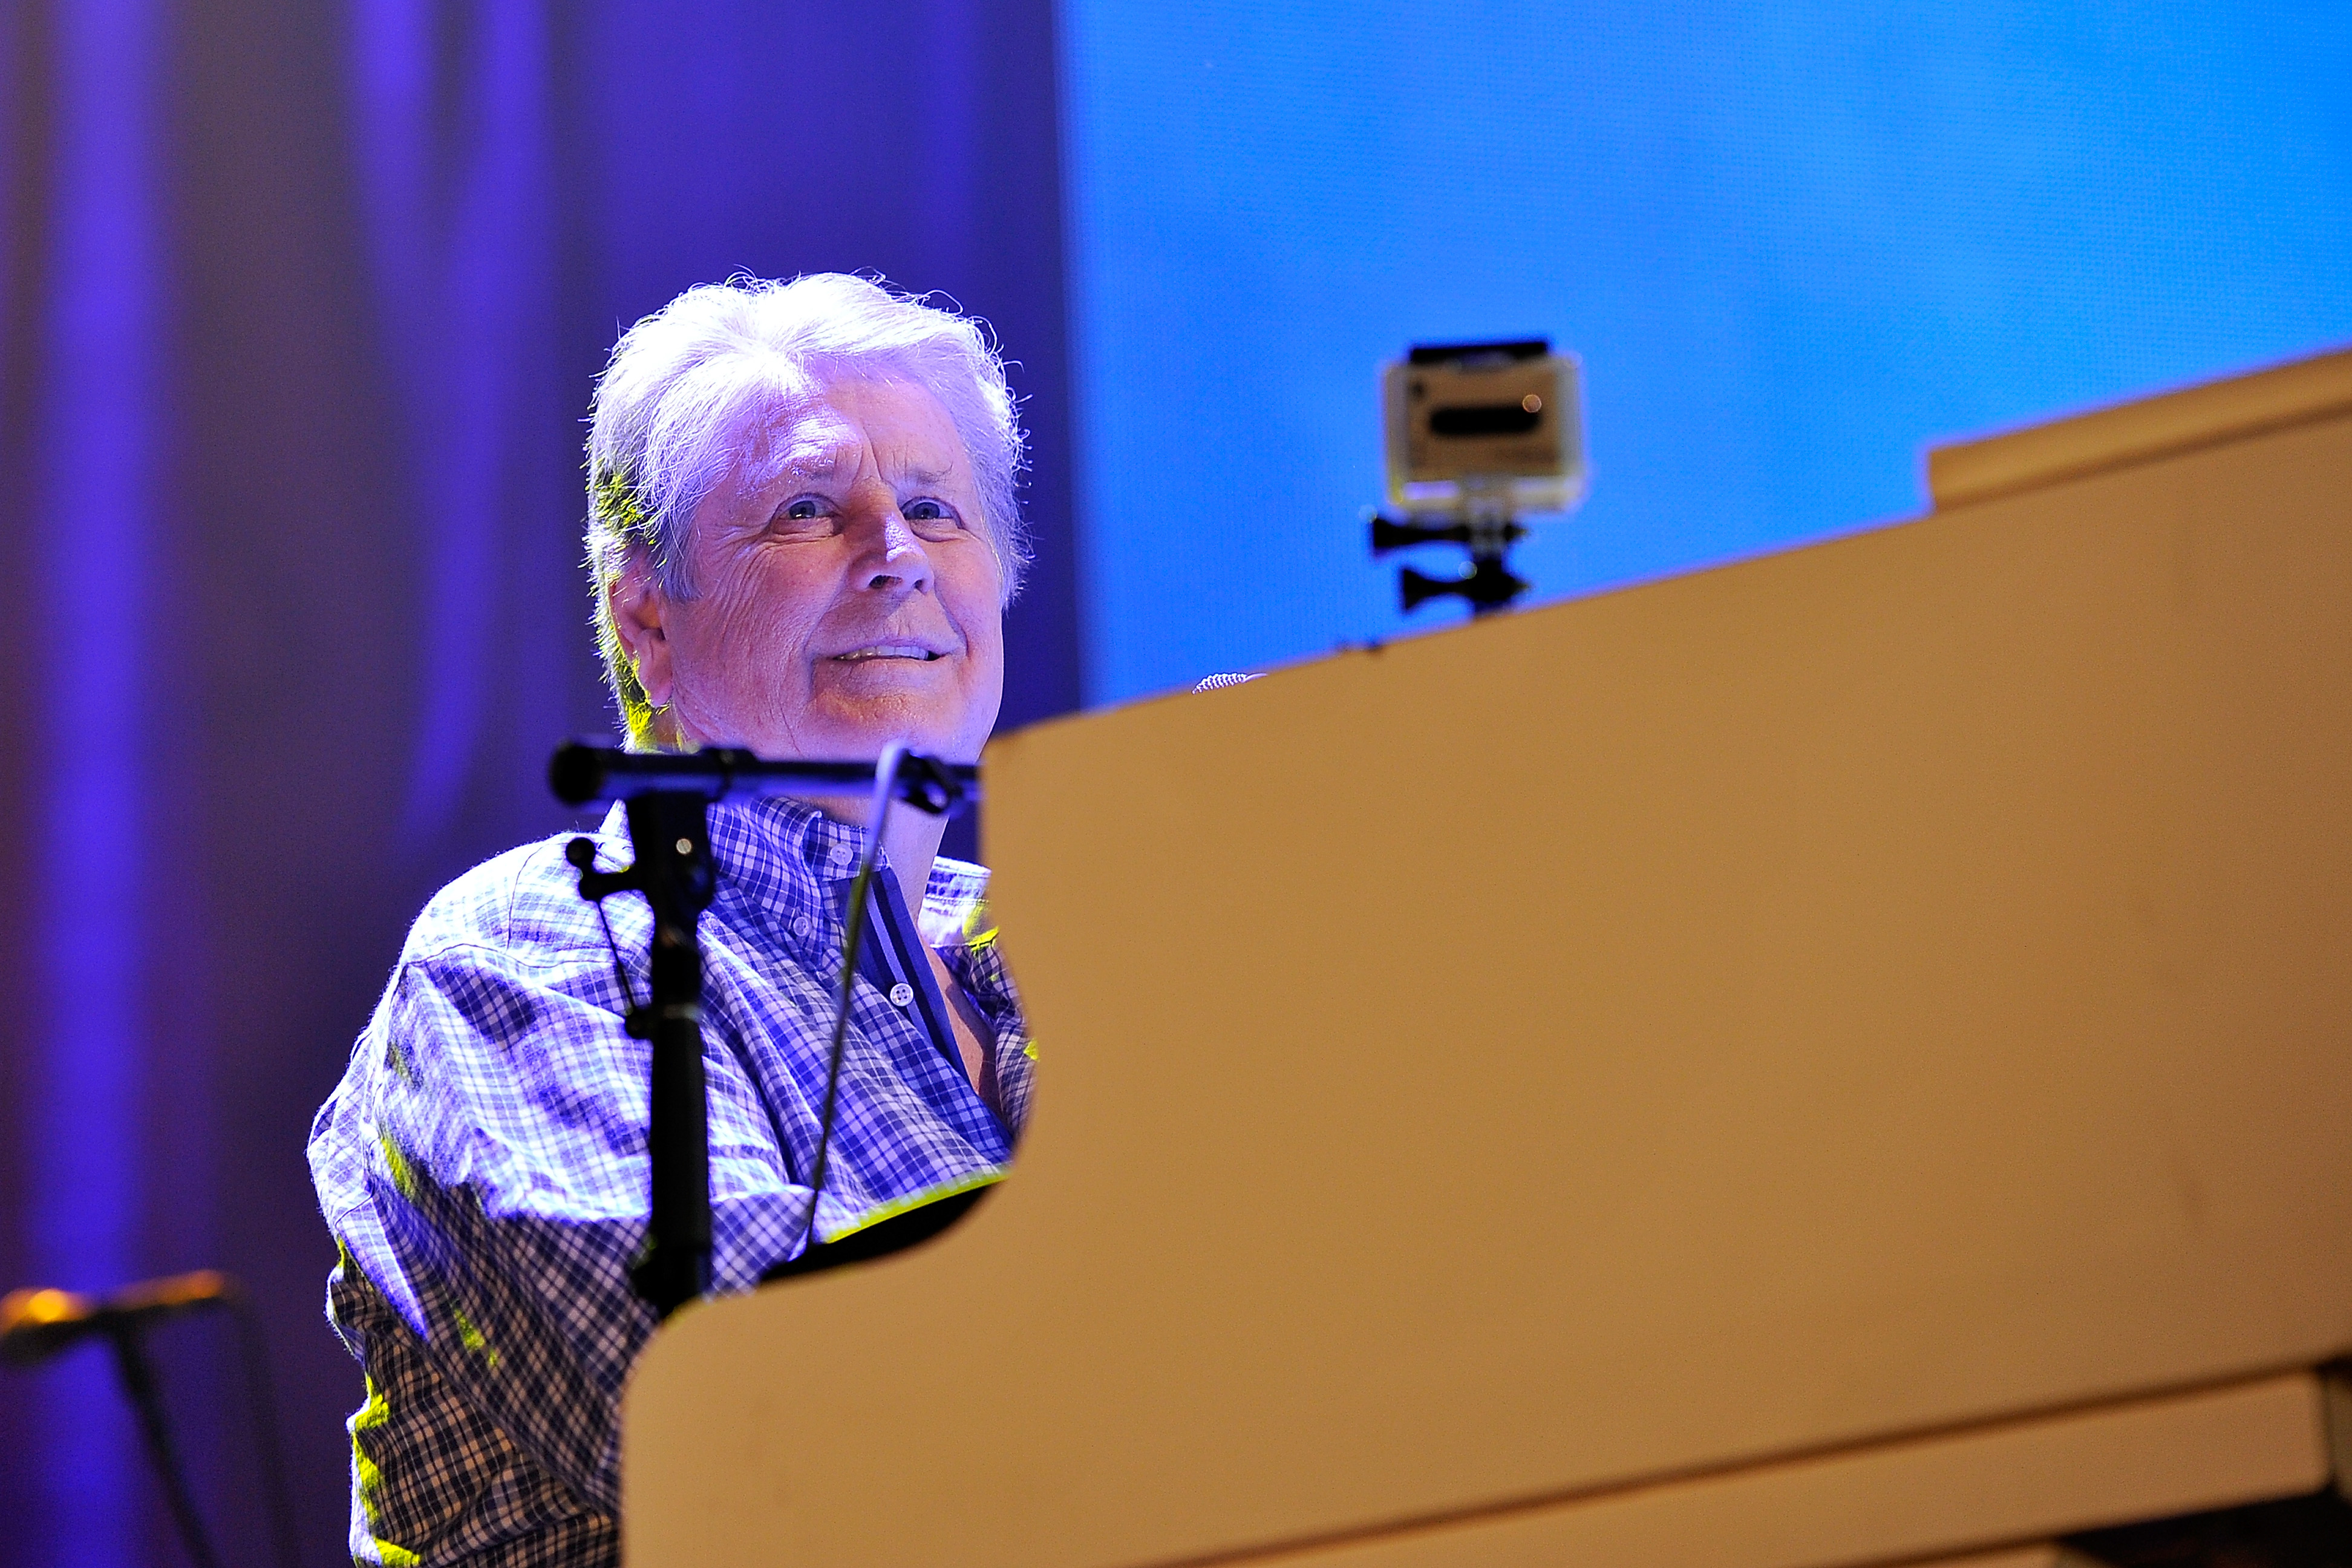 Brian Wilson of The Beach Boys performs on their 50th Anniversary tour at Wembley Arena in London, U.K. on Sept. 28, 2012.